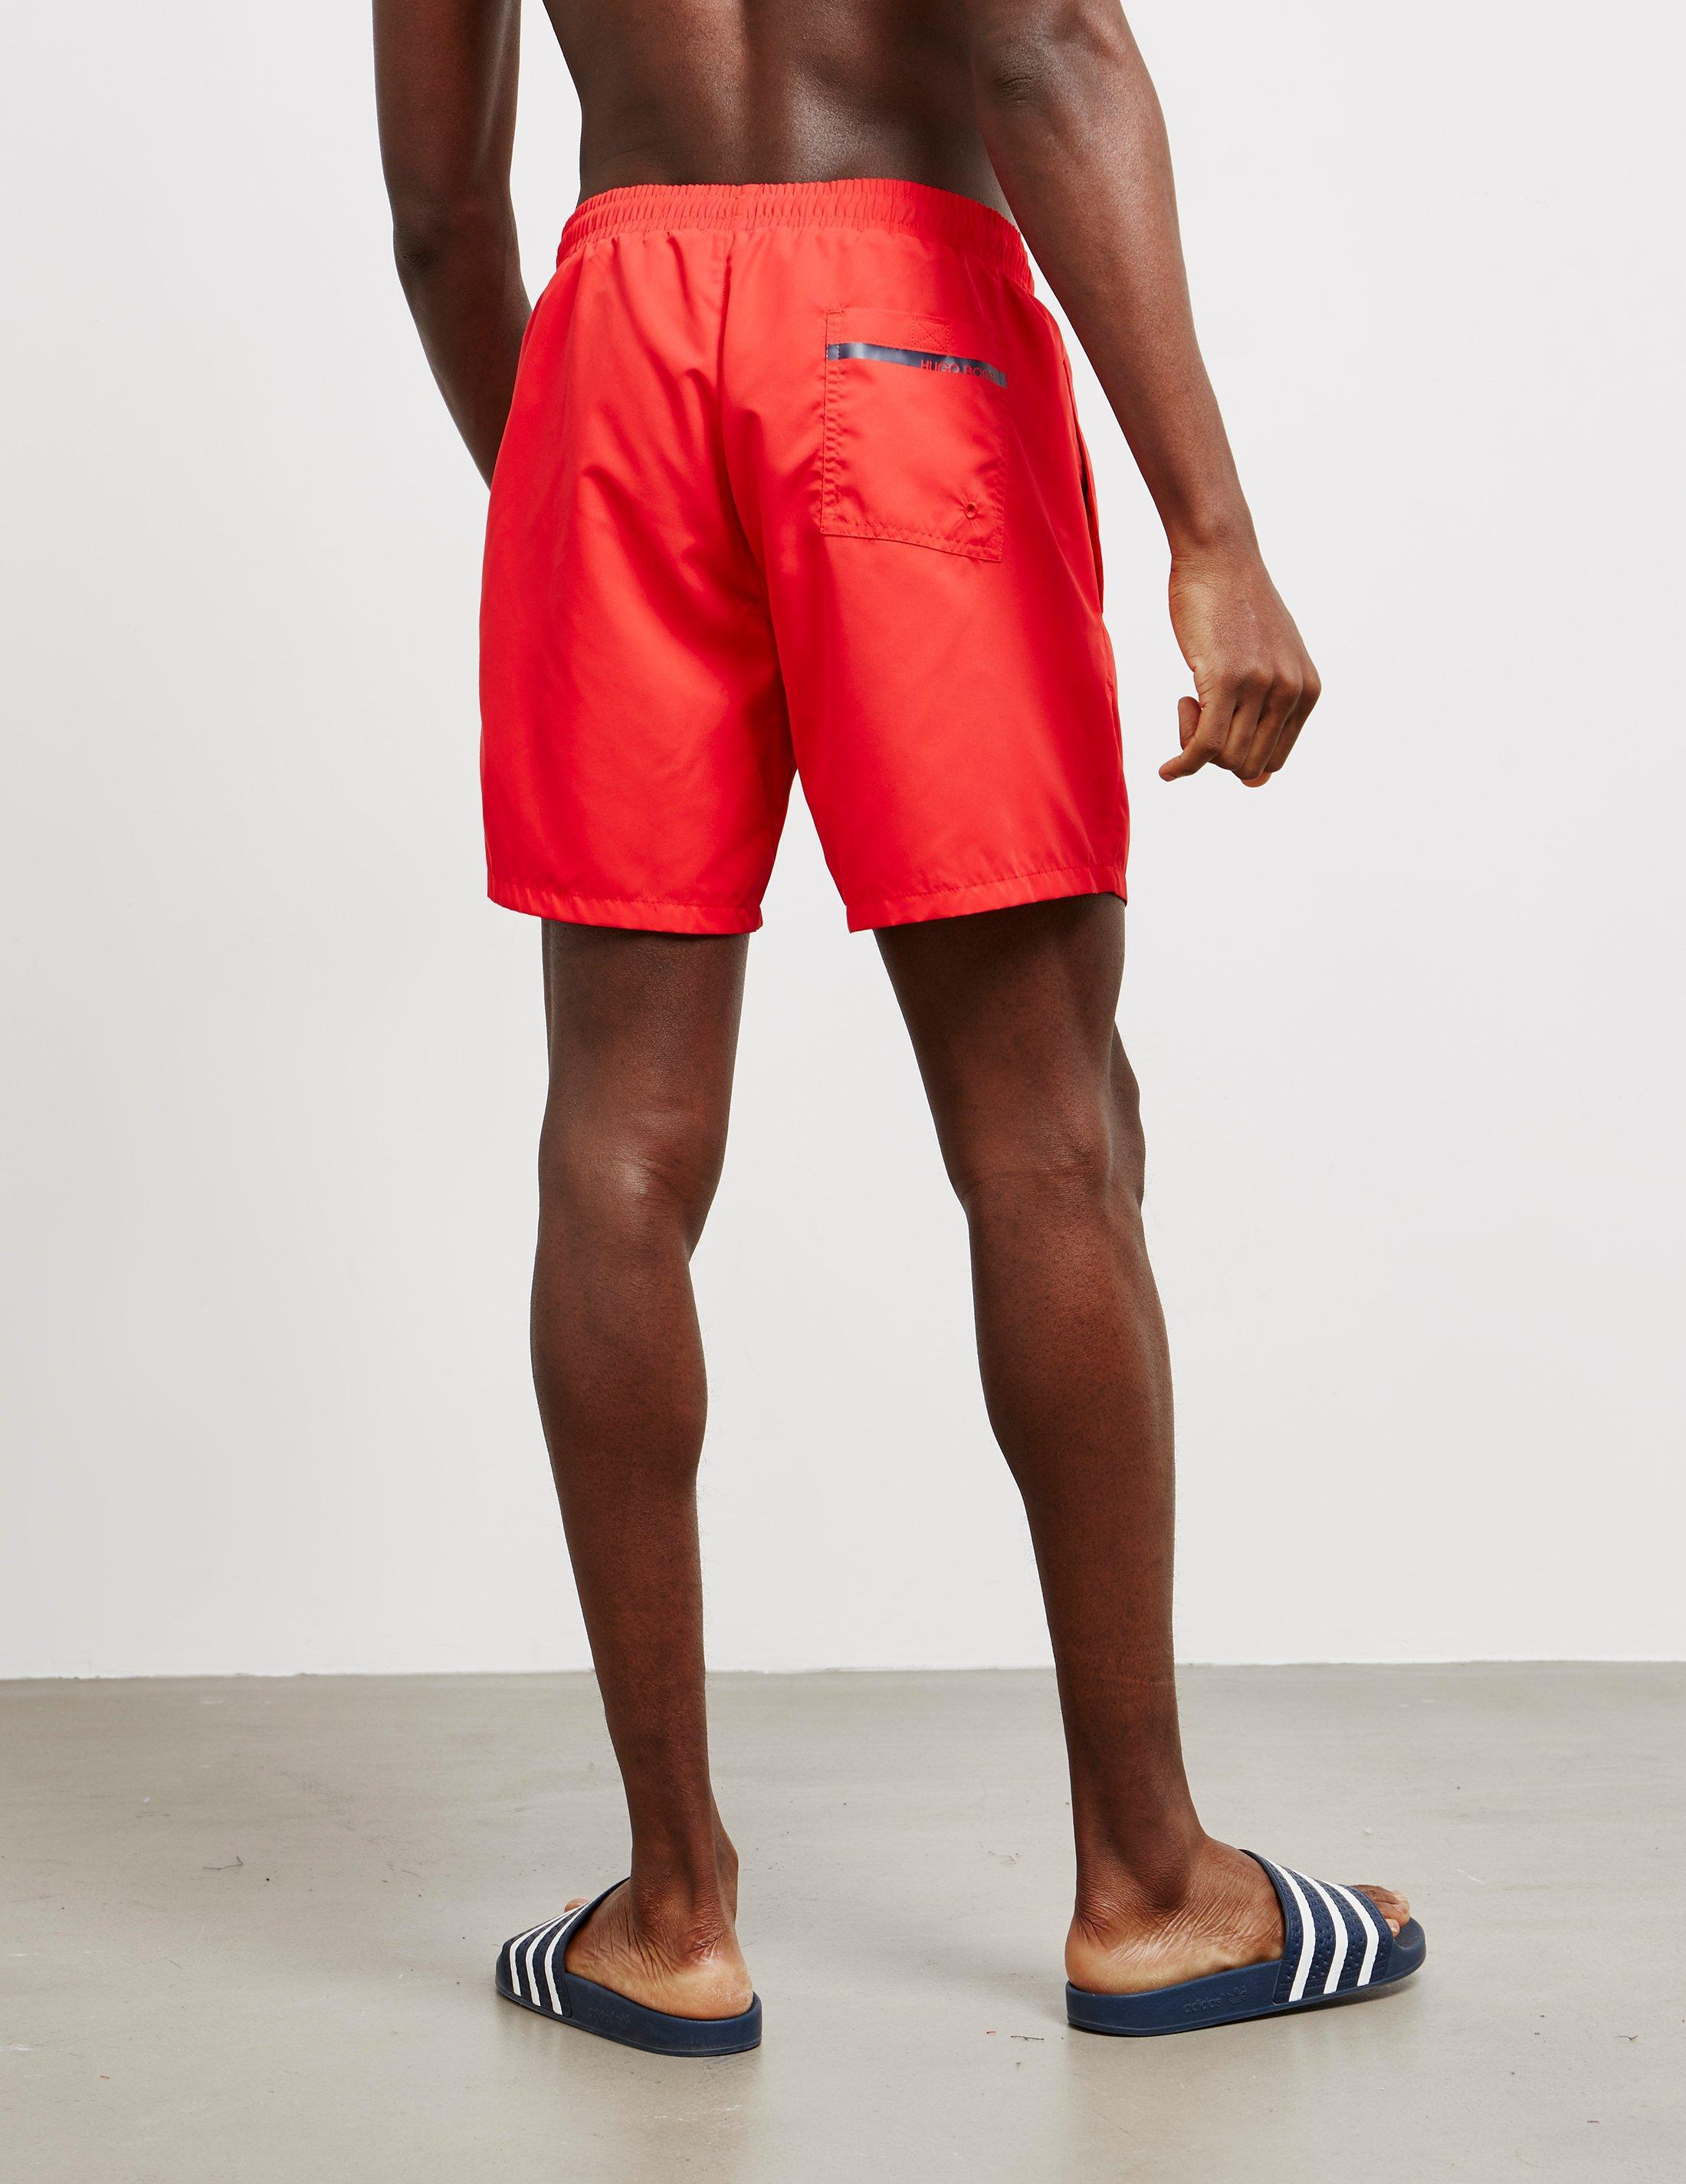 812b742140e82 BOSS Dolphin Swim Shorts Red in Red for Men - Lyst